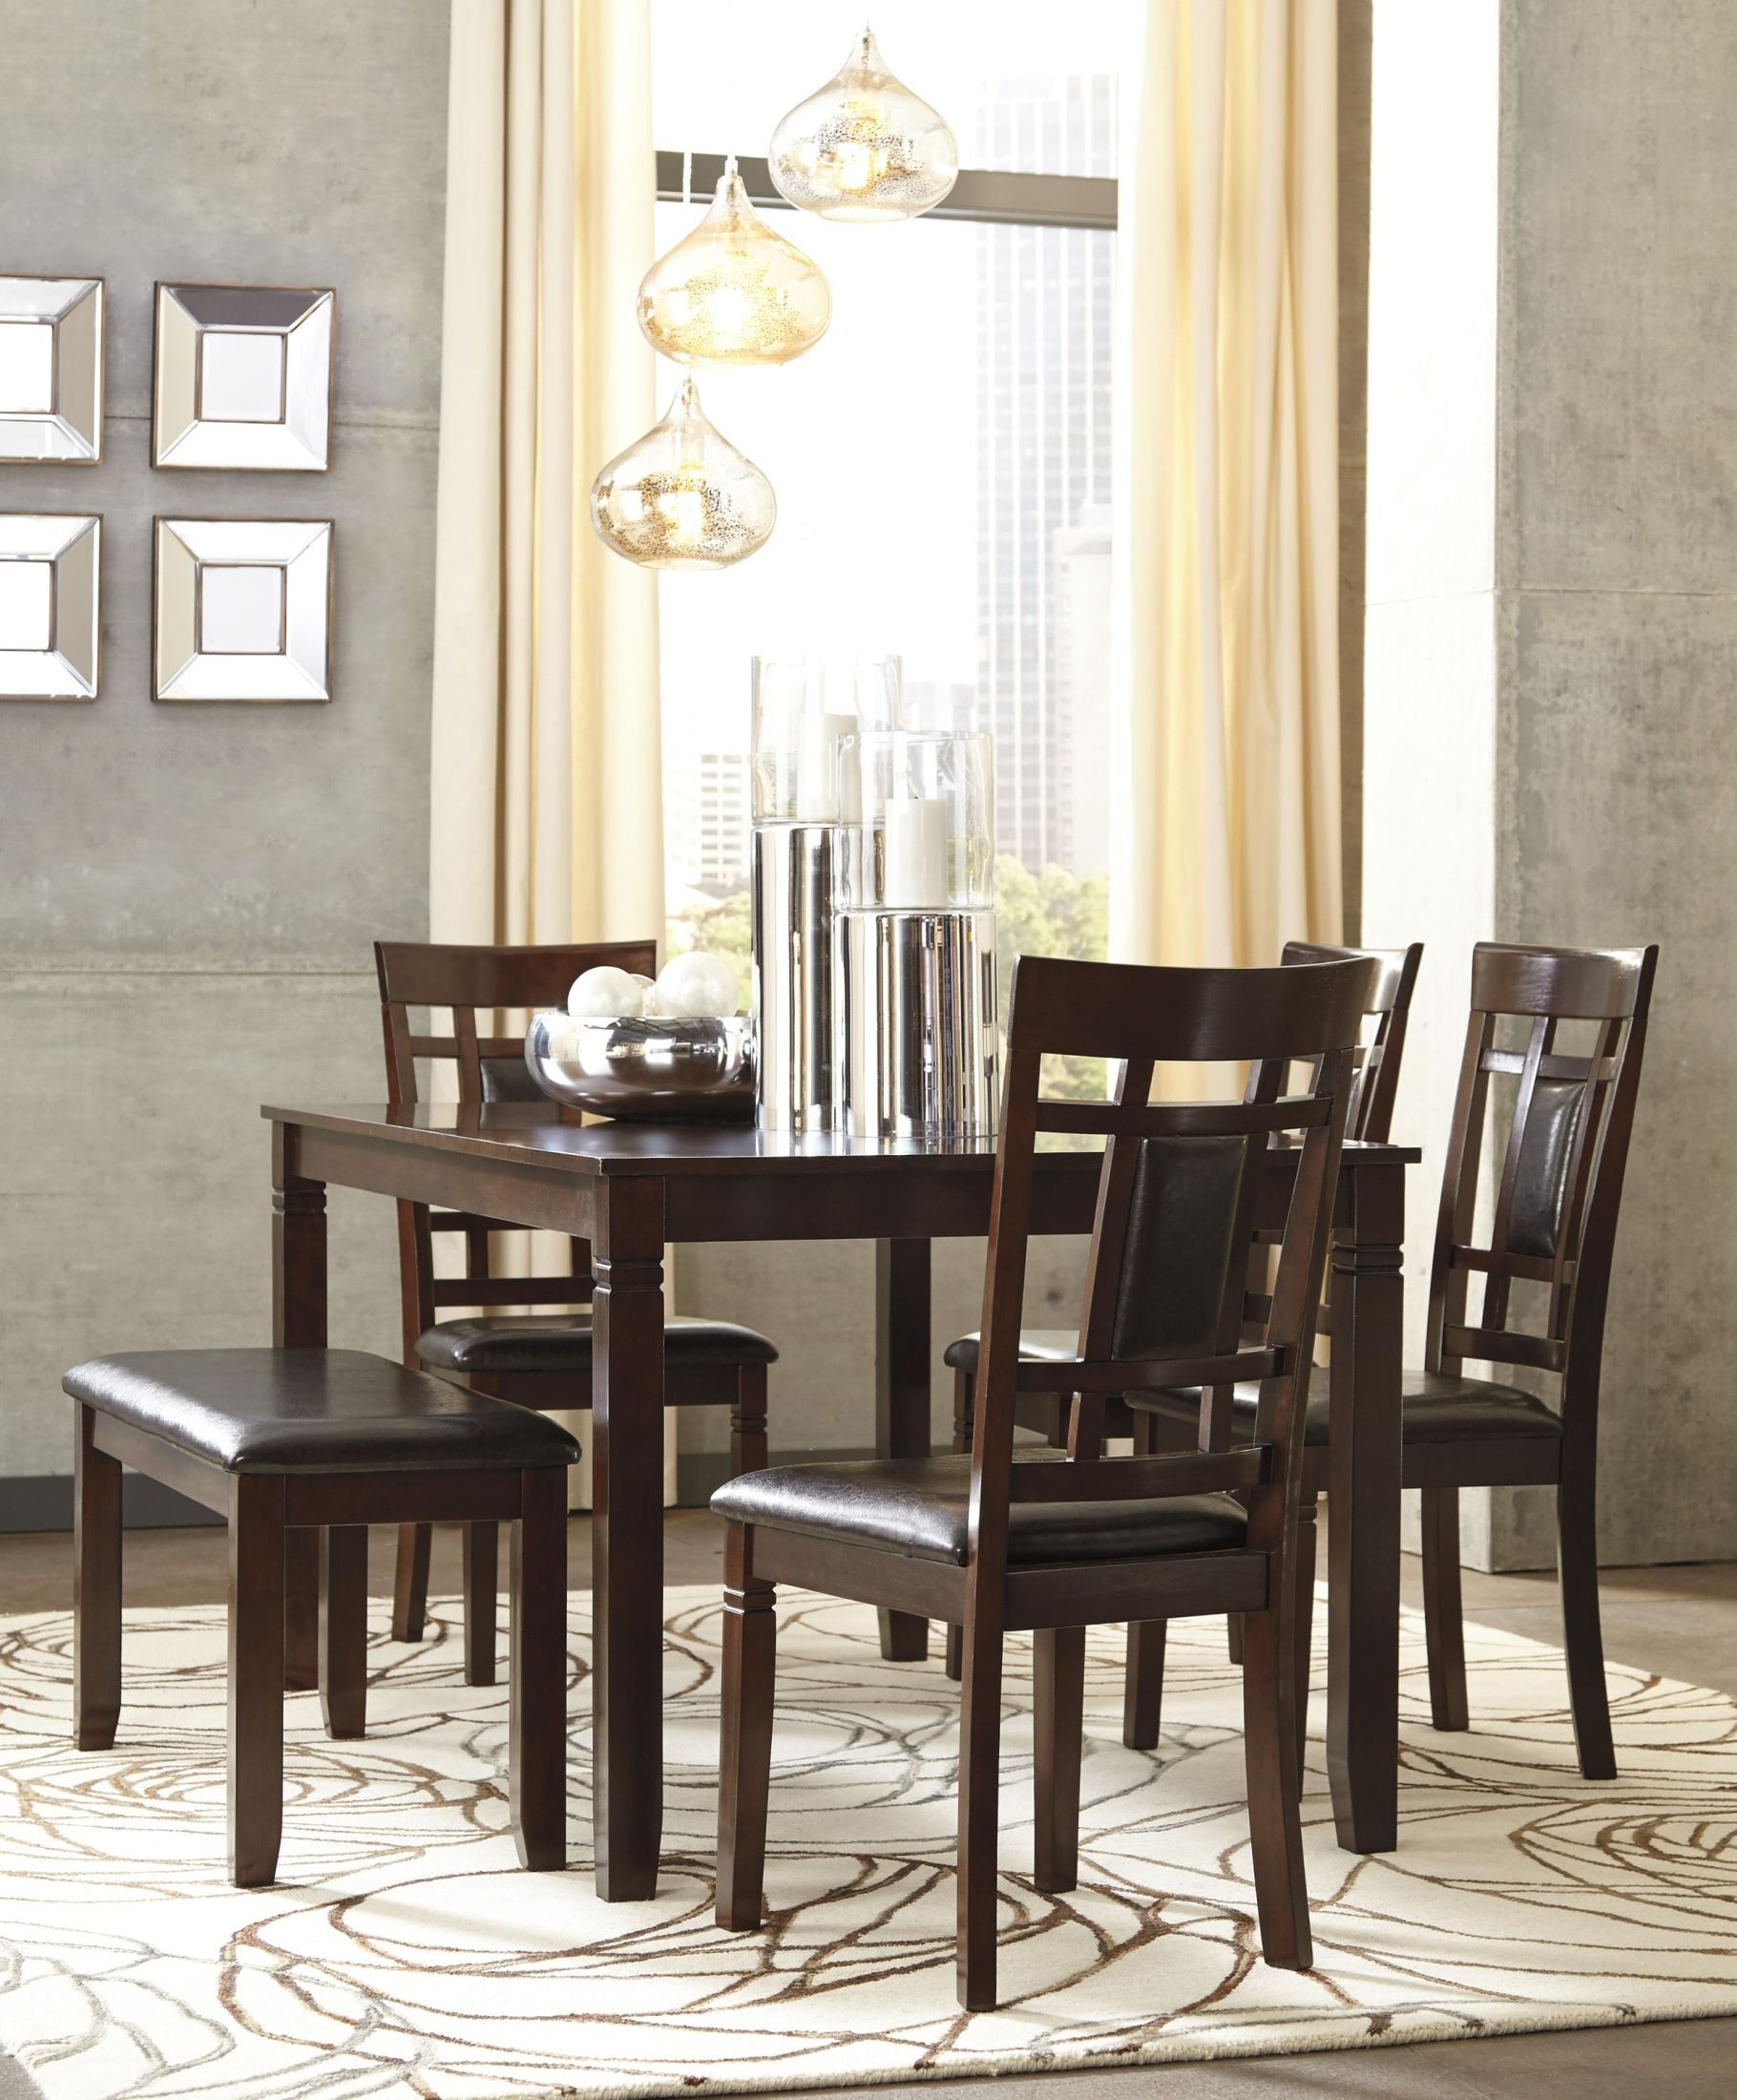 Dining Room Sets: Bennox Brown 6 Piece Rectangular Dining Room Set, D384-325